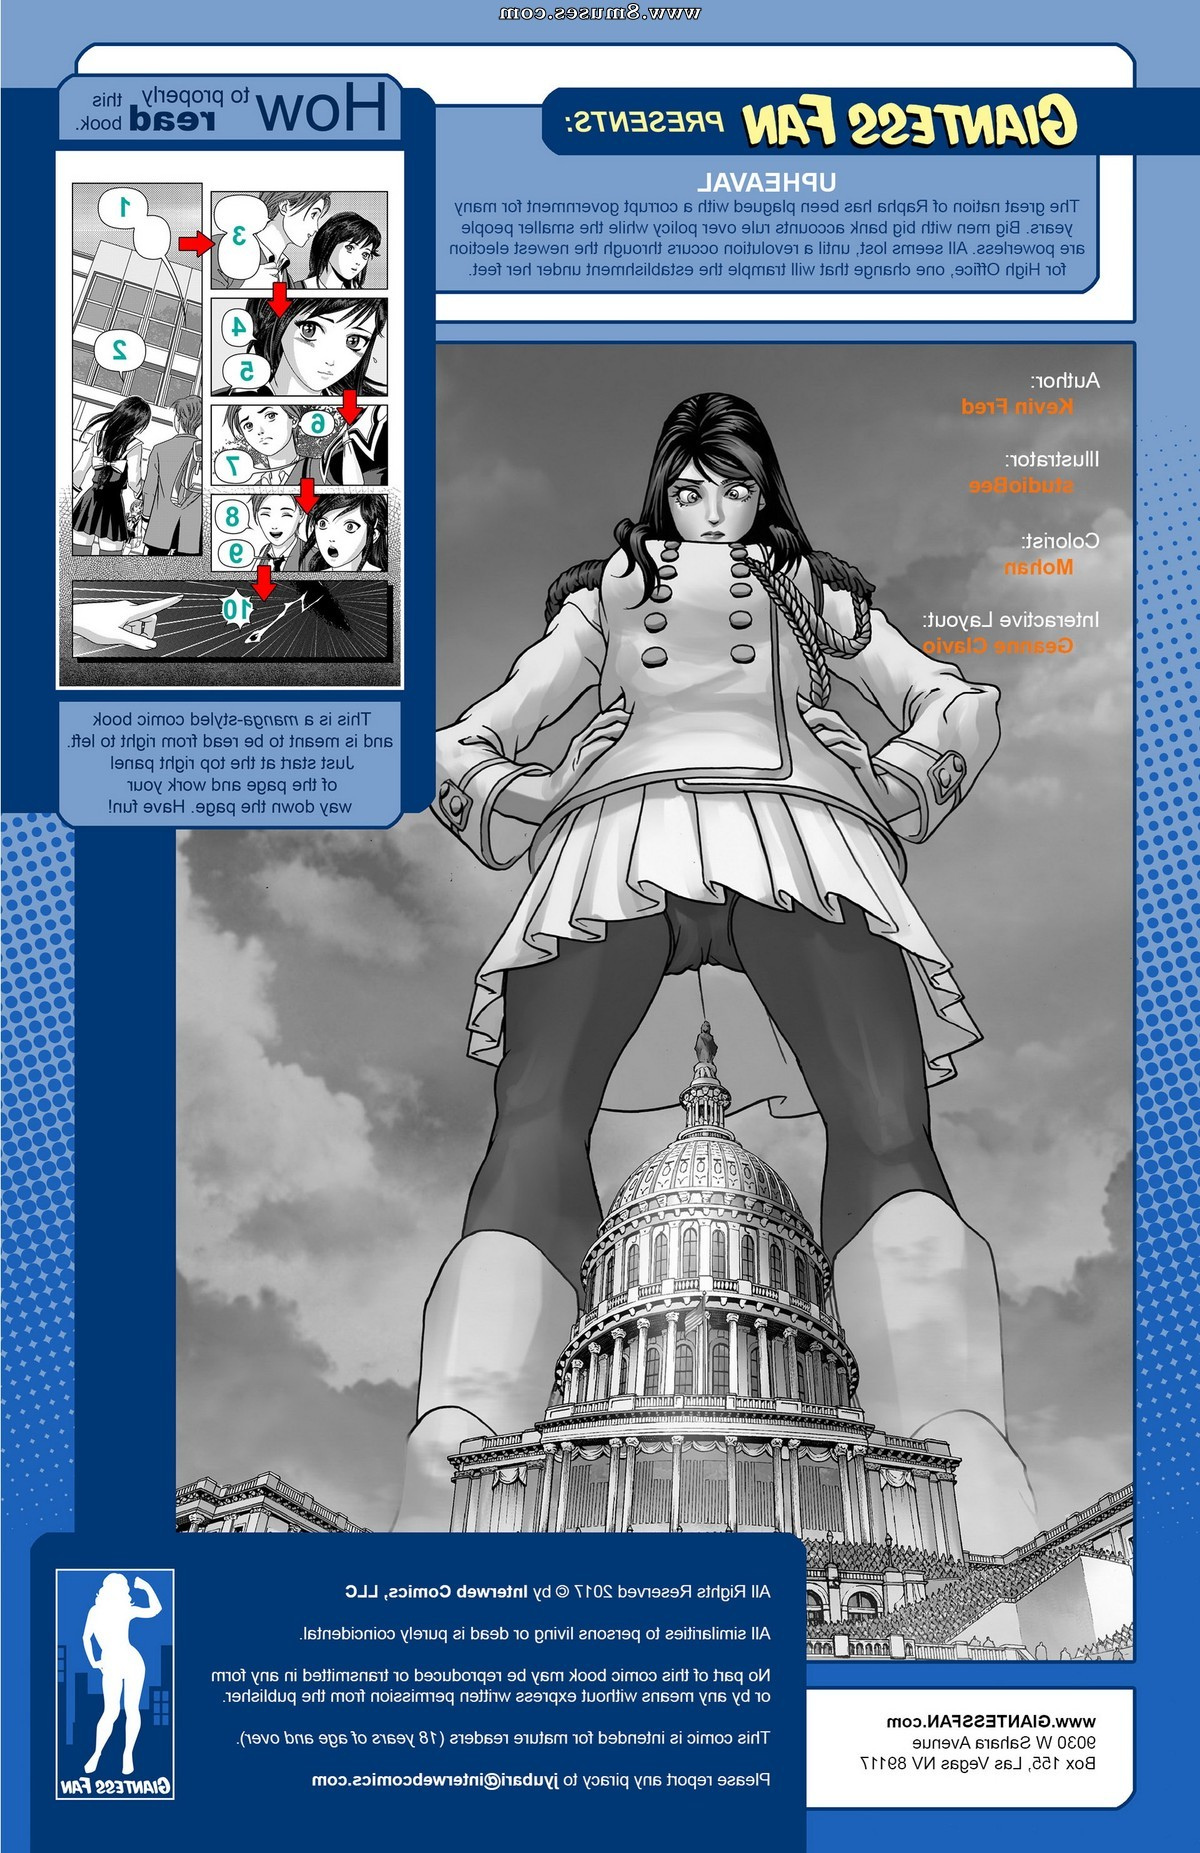 Giantess-Fan-Comics/Upheaval/Issue-1 Upheaval_-_Issue_1_2.jpg